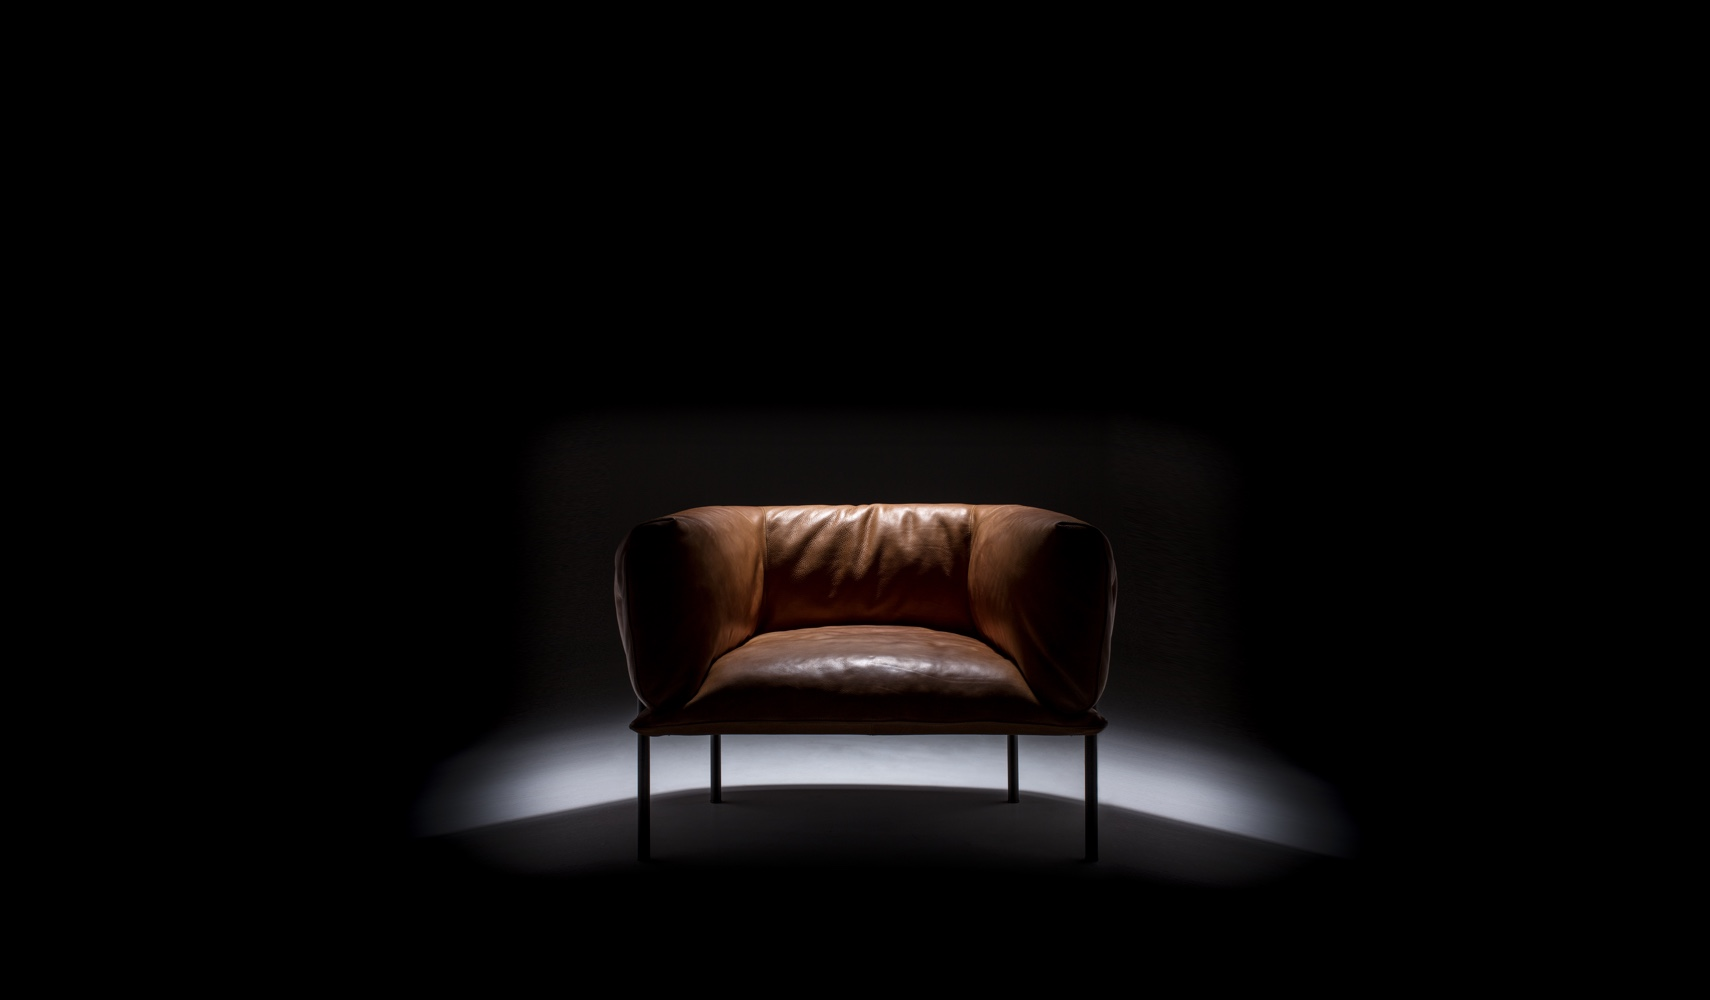 Rondo chair by Lucy Kurrein and Molinari Design.